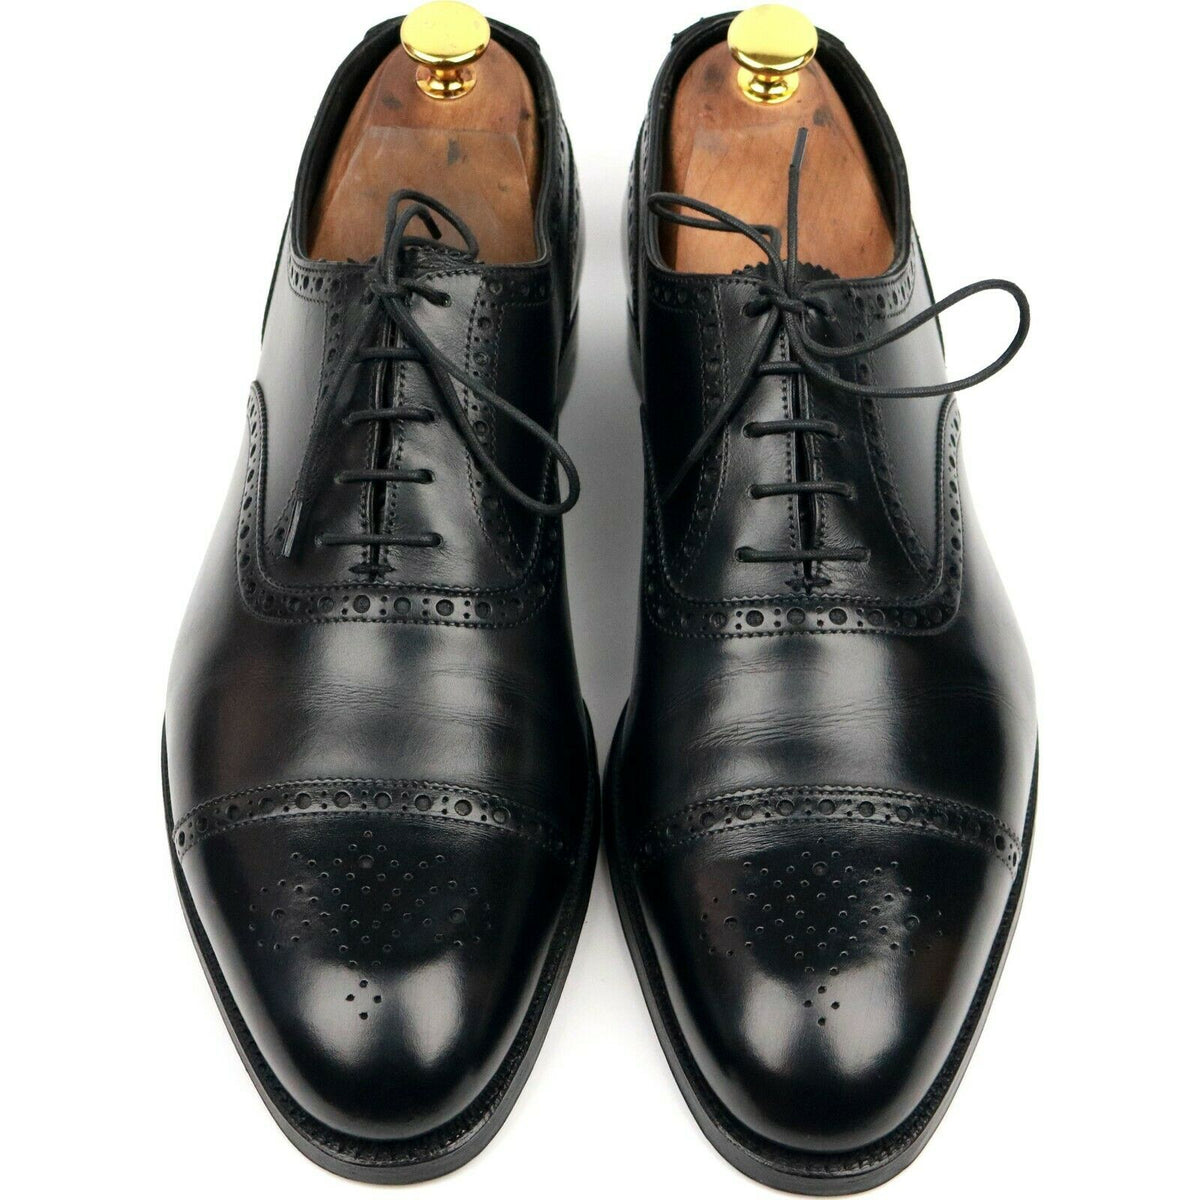 Crockett & Jones 'Barrington II' Black Leather Oxford Semi Brogues UK 8.5 E